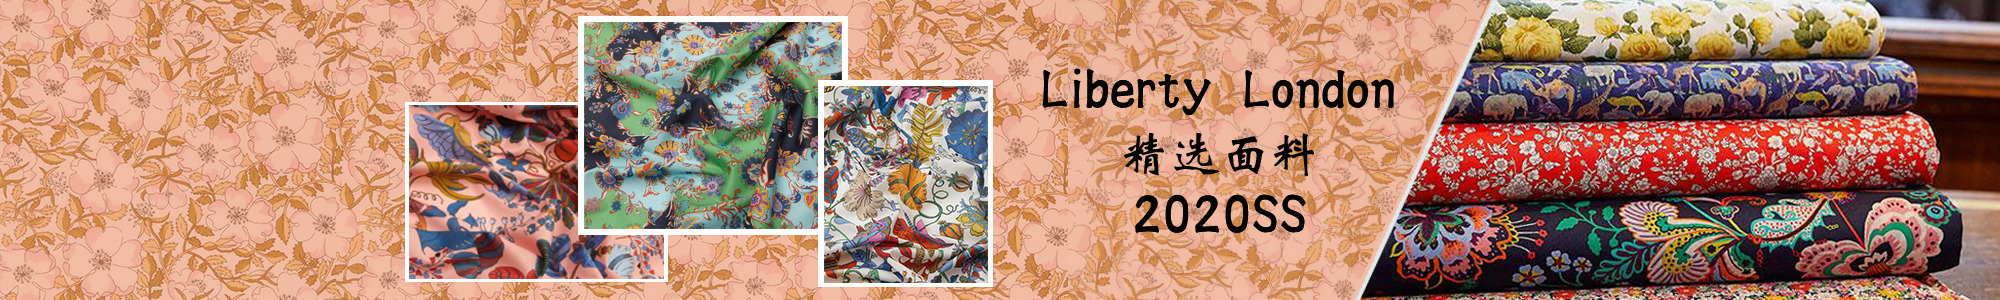 Liberty London 2020SS